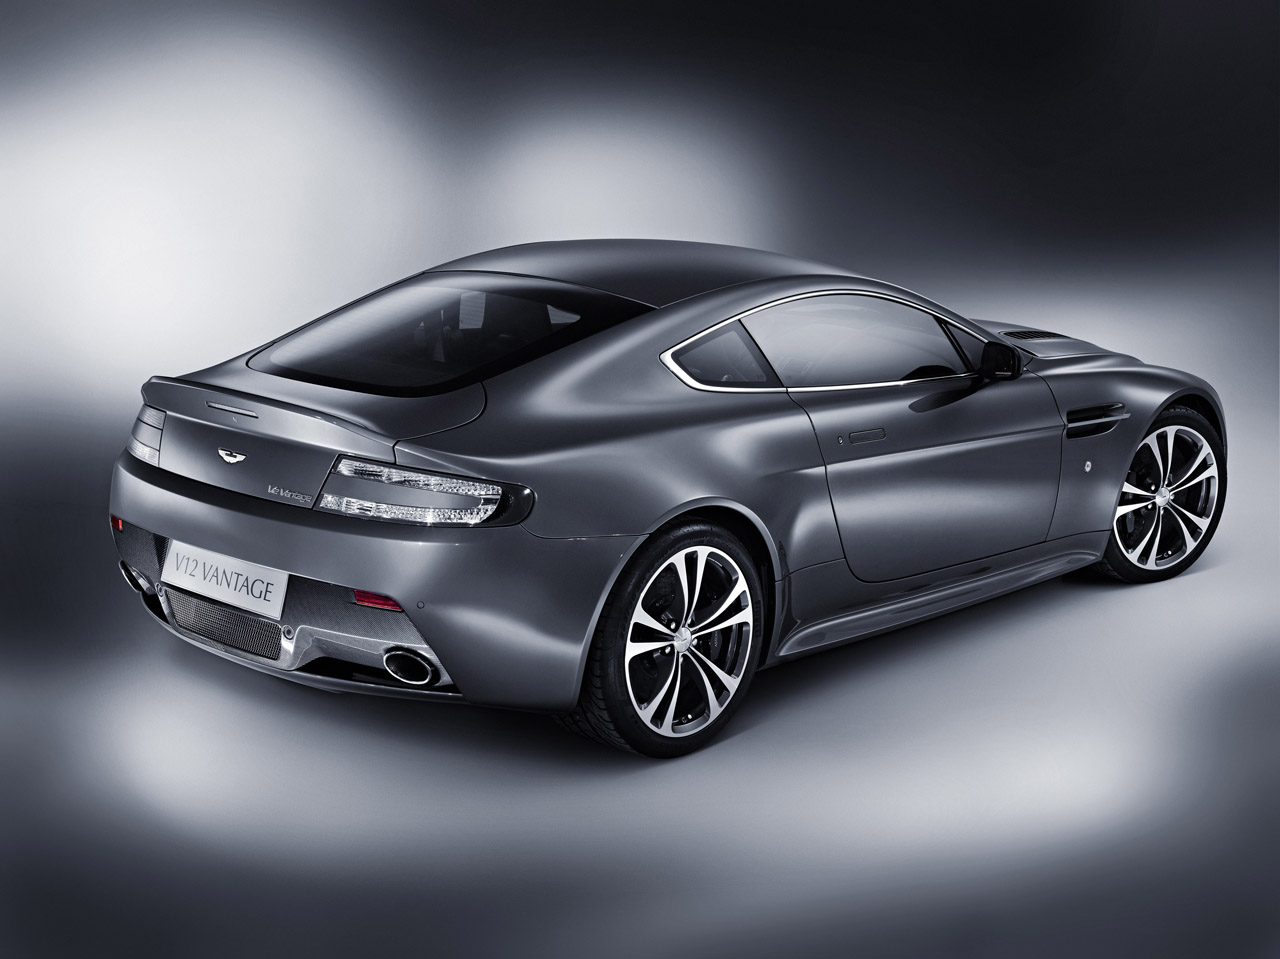 vantage - Automobile Wallpapers in, HD | Iphone | Android| Desktop 4